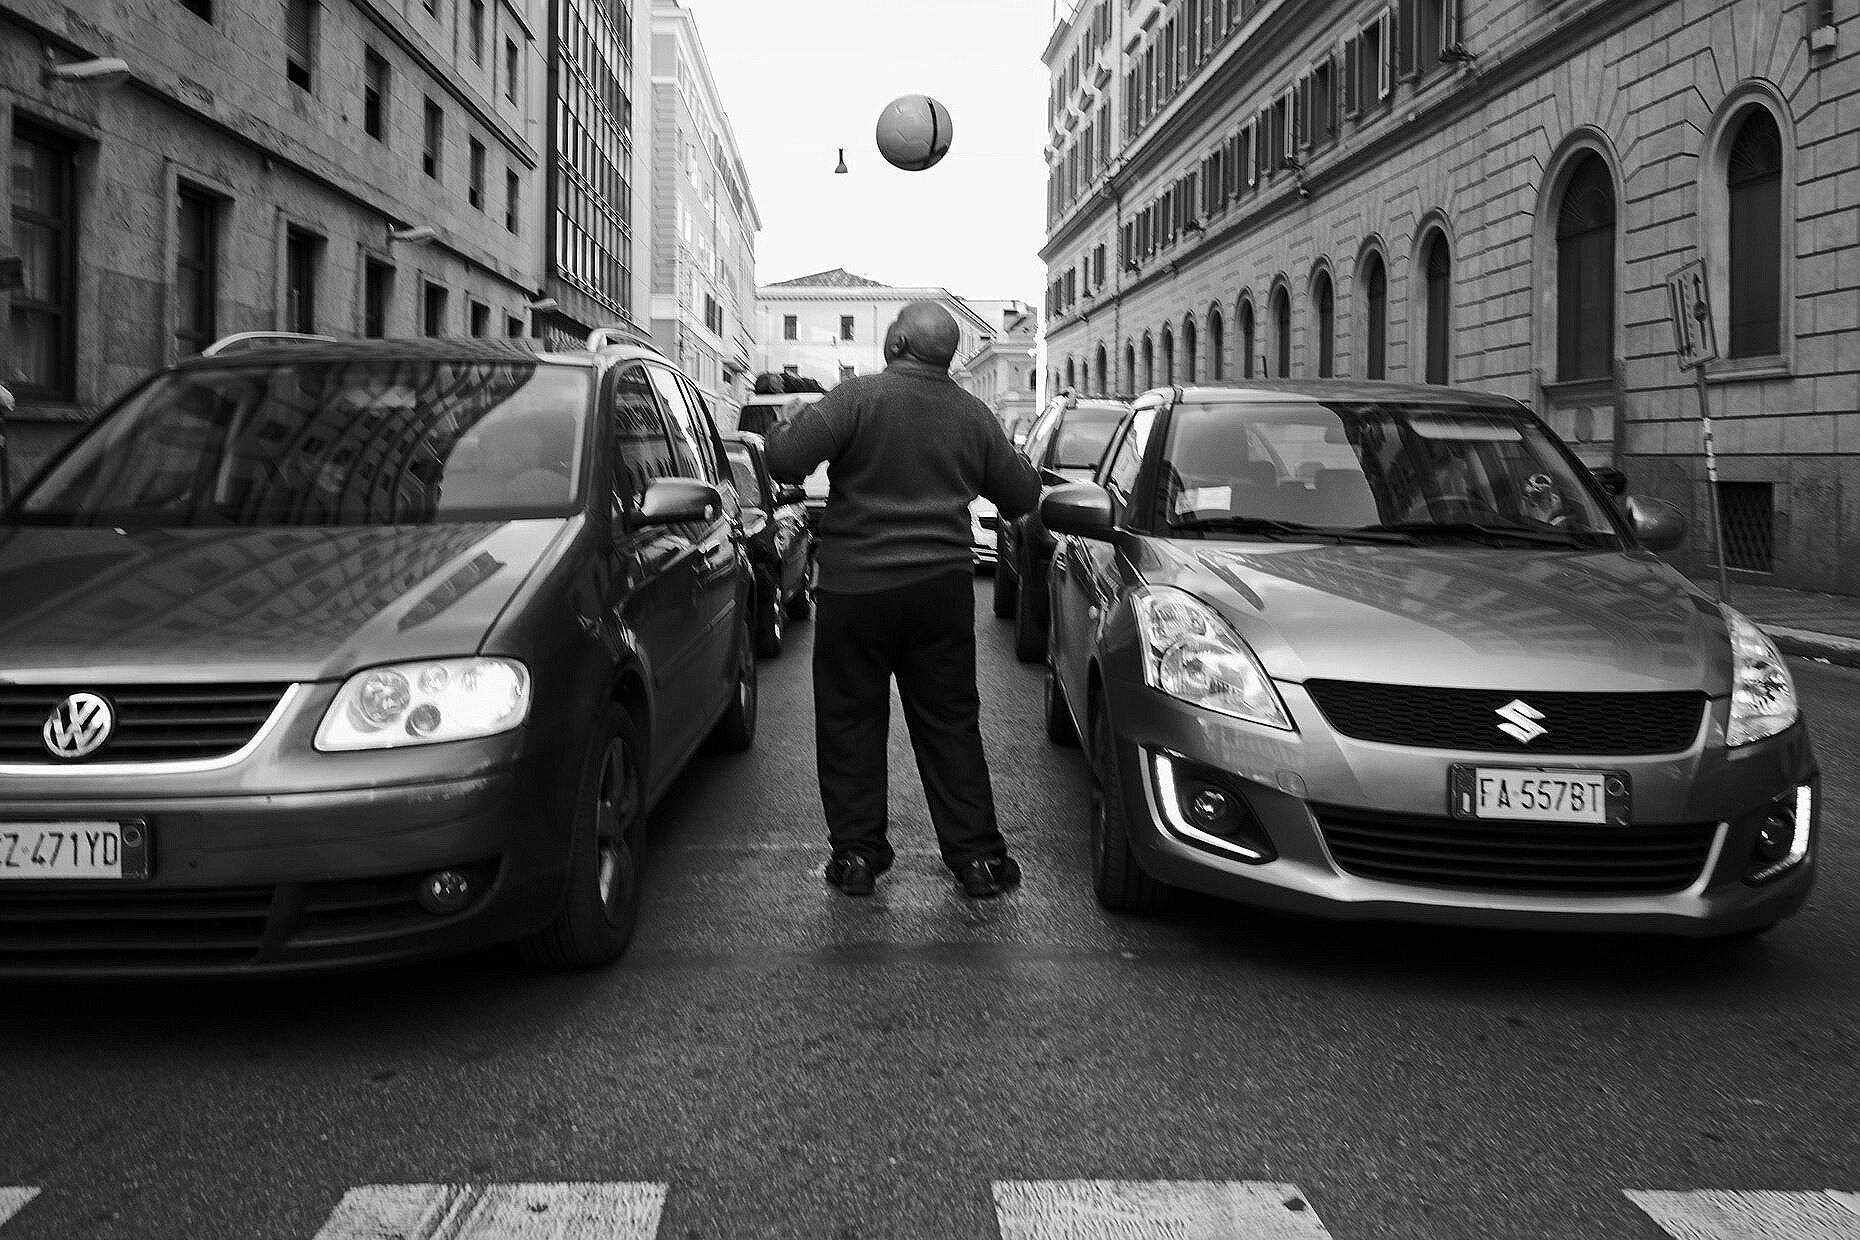 Man playing with a football between waiting cars in Rome.